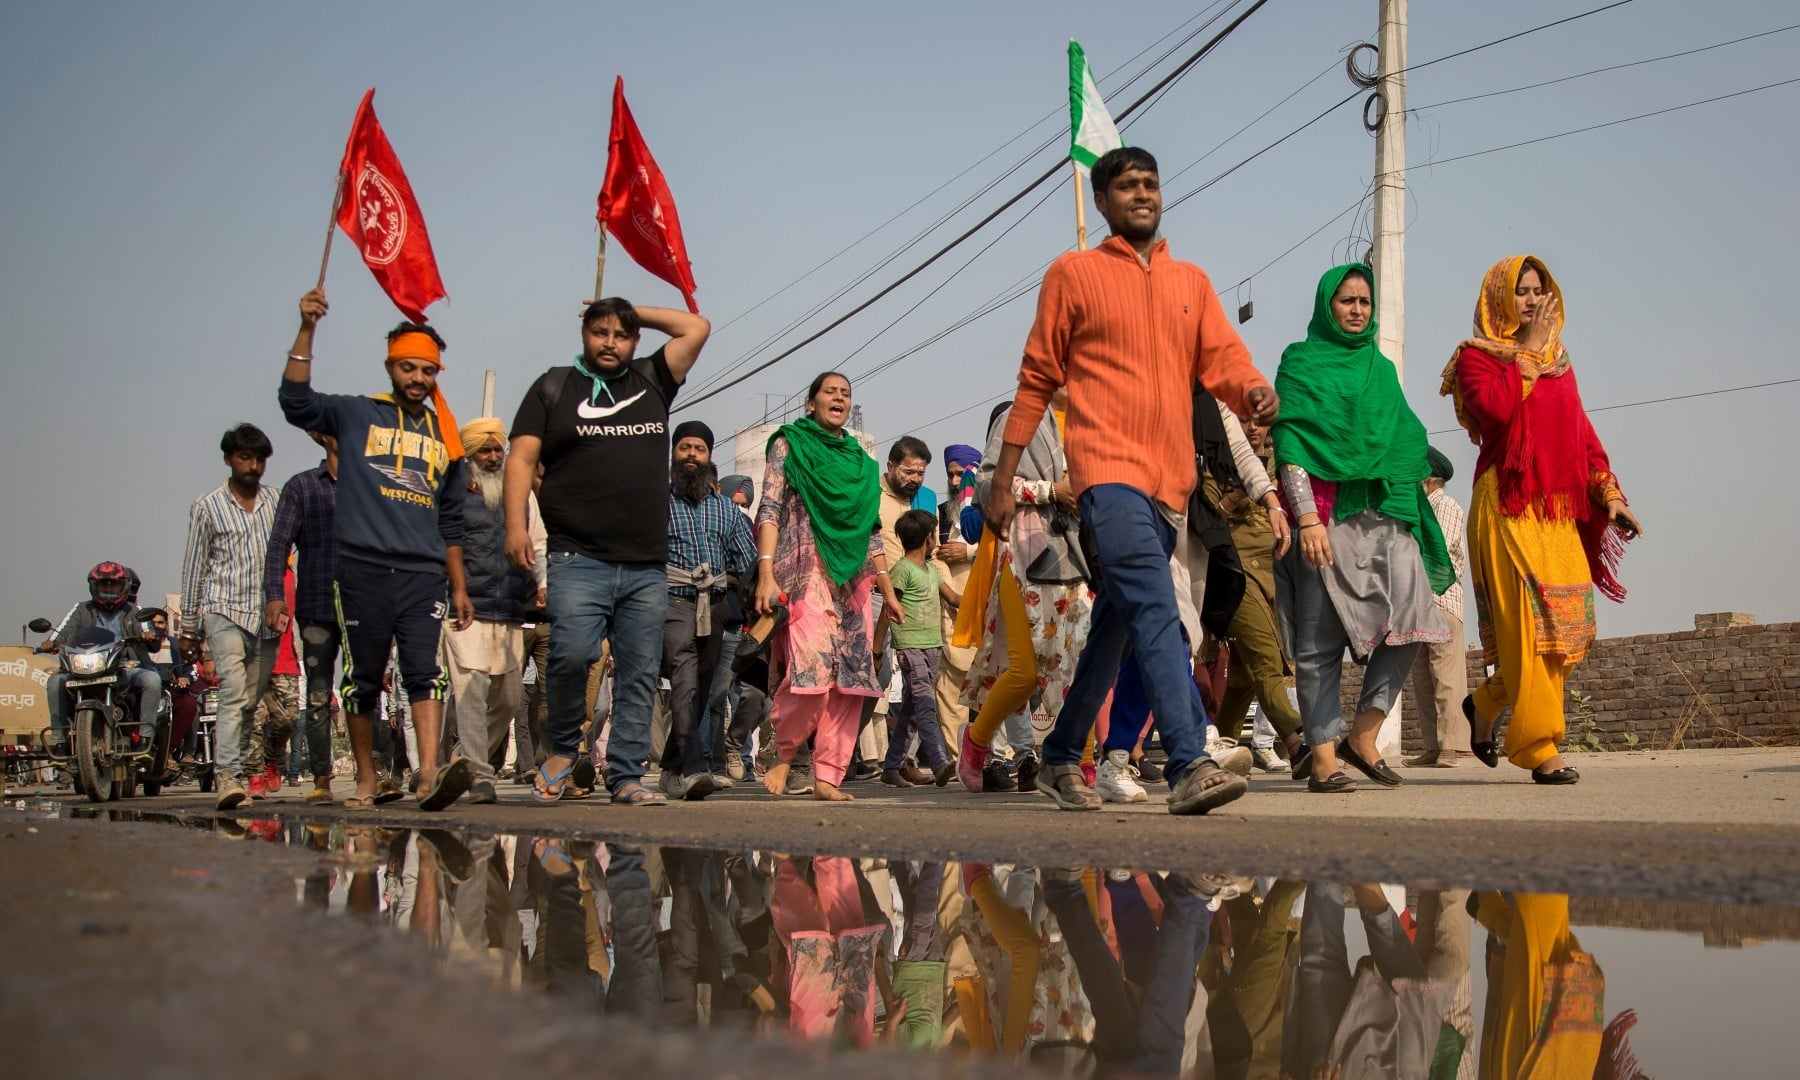 A group of protesters shout slogans as they arrive to join farmers demanding to abolish new farming laws at the Delhi-Haryana state border on Dec 1. — AP